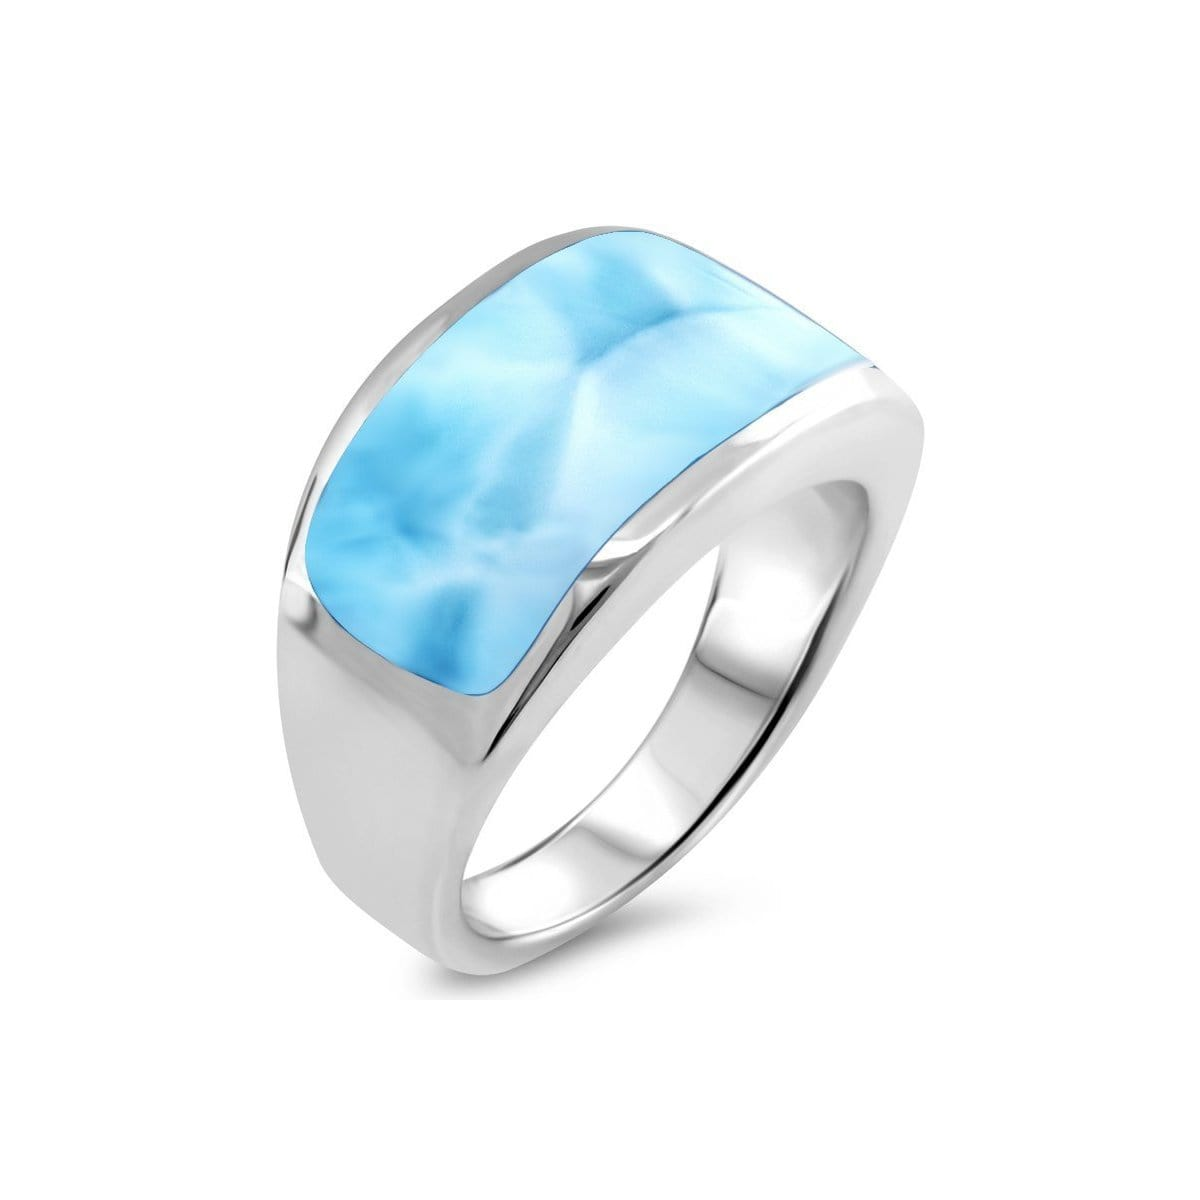 Encore Ladies Ring - Renco01-00-Marahlago Larimar-Renee Taylor Gallery